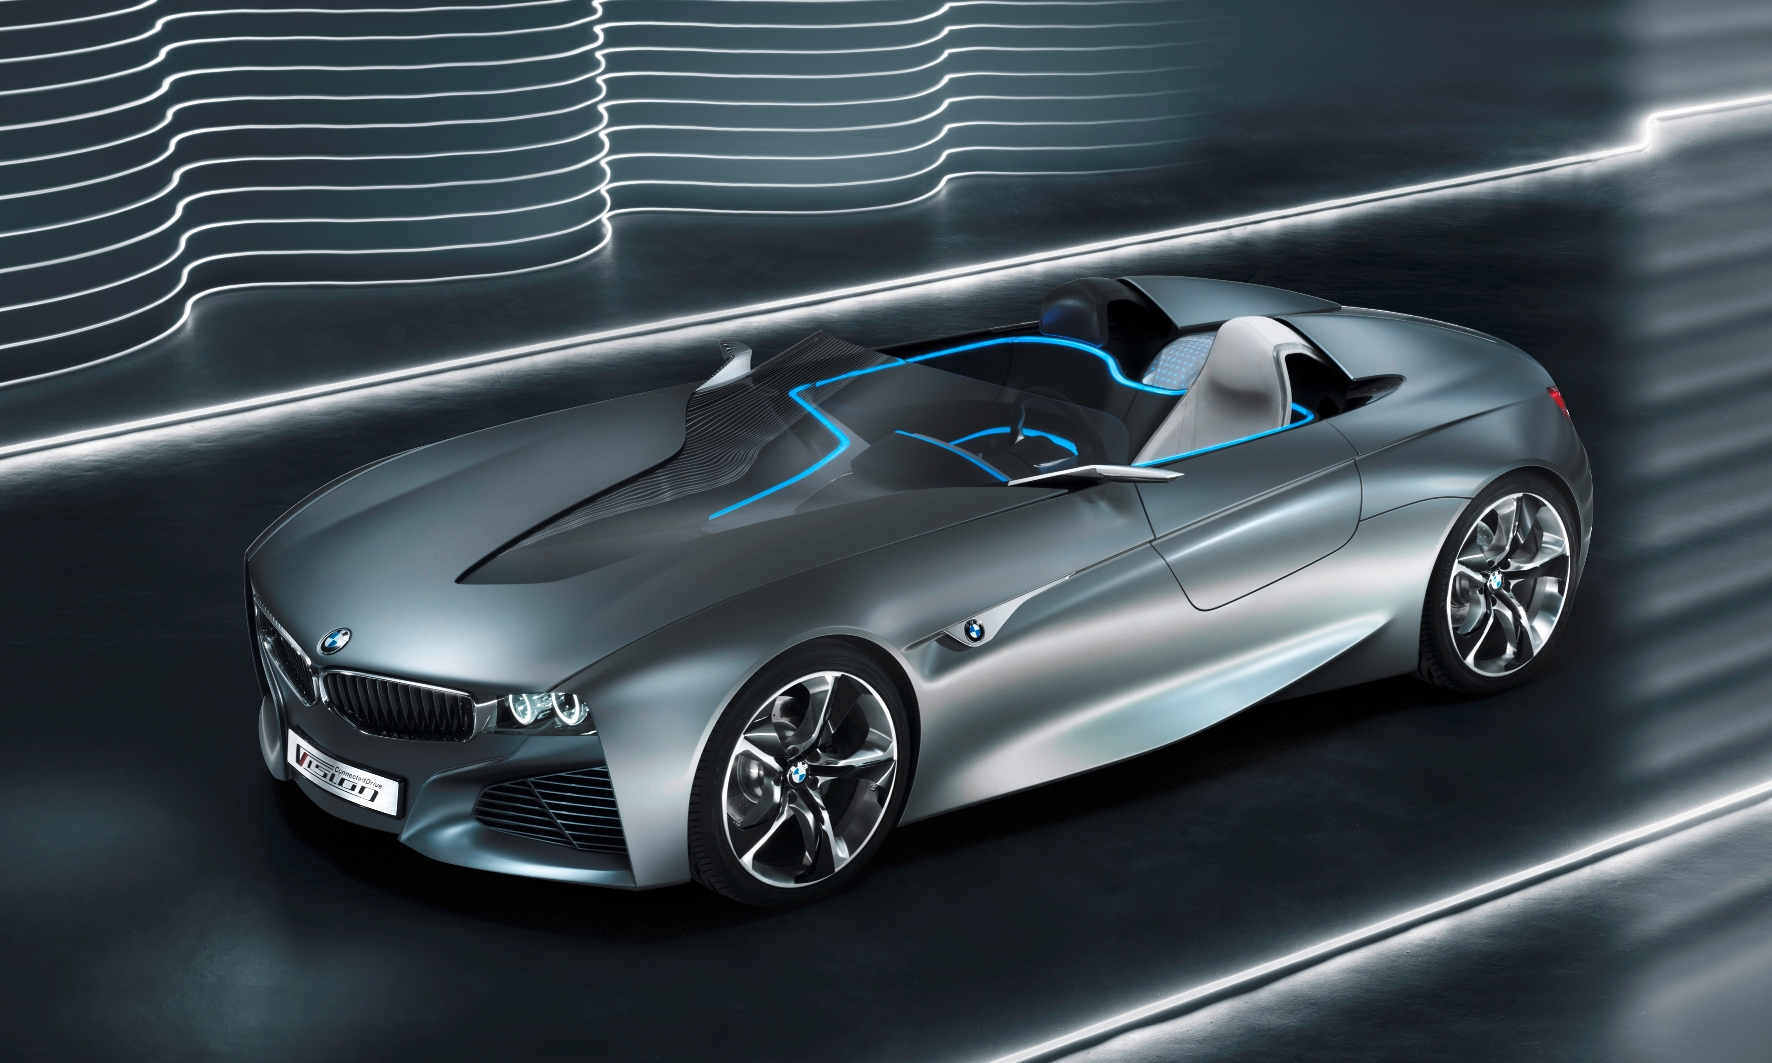 Concept Flashback 2011 Bmw 328 Hommage Is Retro Themed